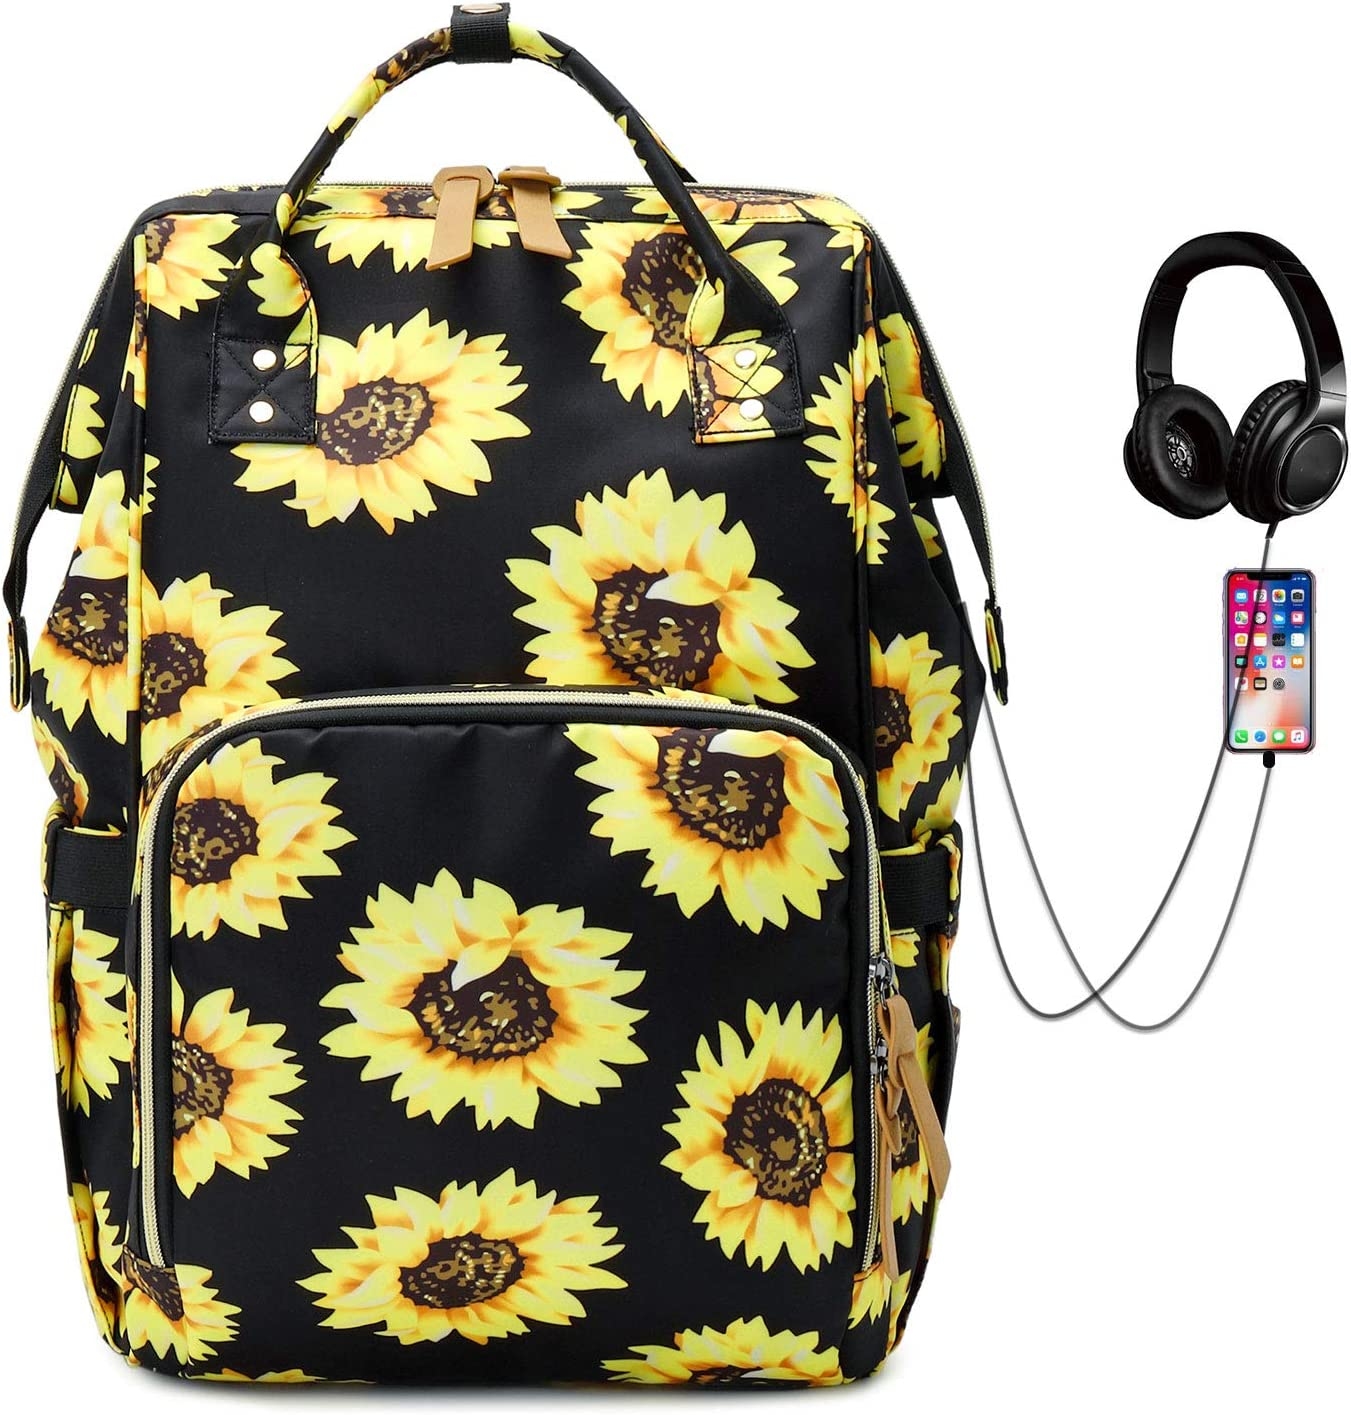 Laptop Backpack, Water Resistant College School Backpack with USB Charging Port, Travel Backpack Casual Daypacks for Women/Girls, Sunflower